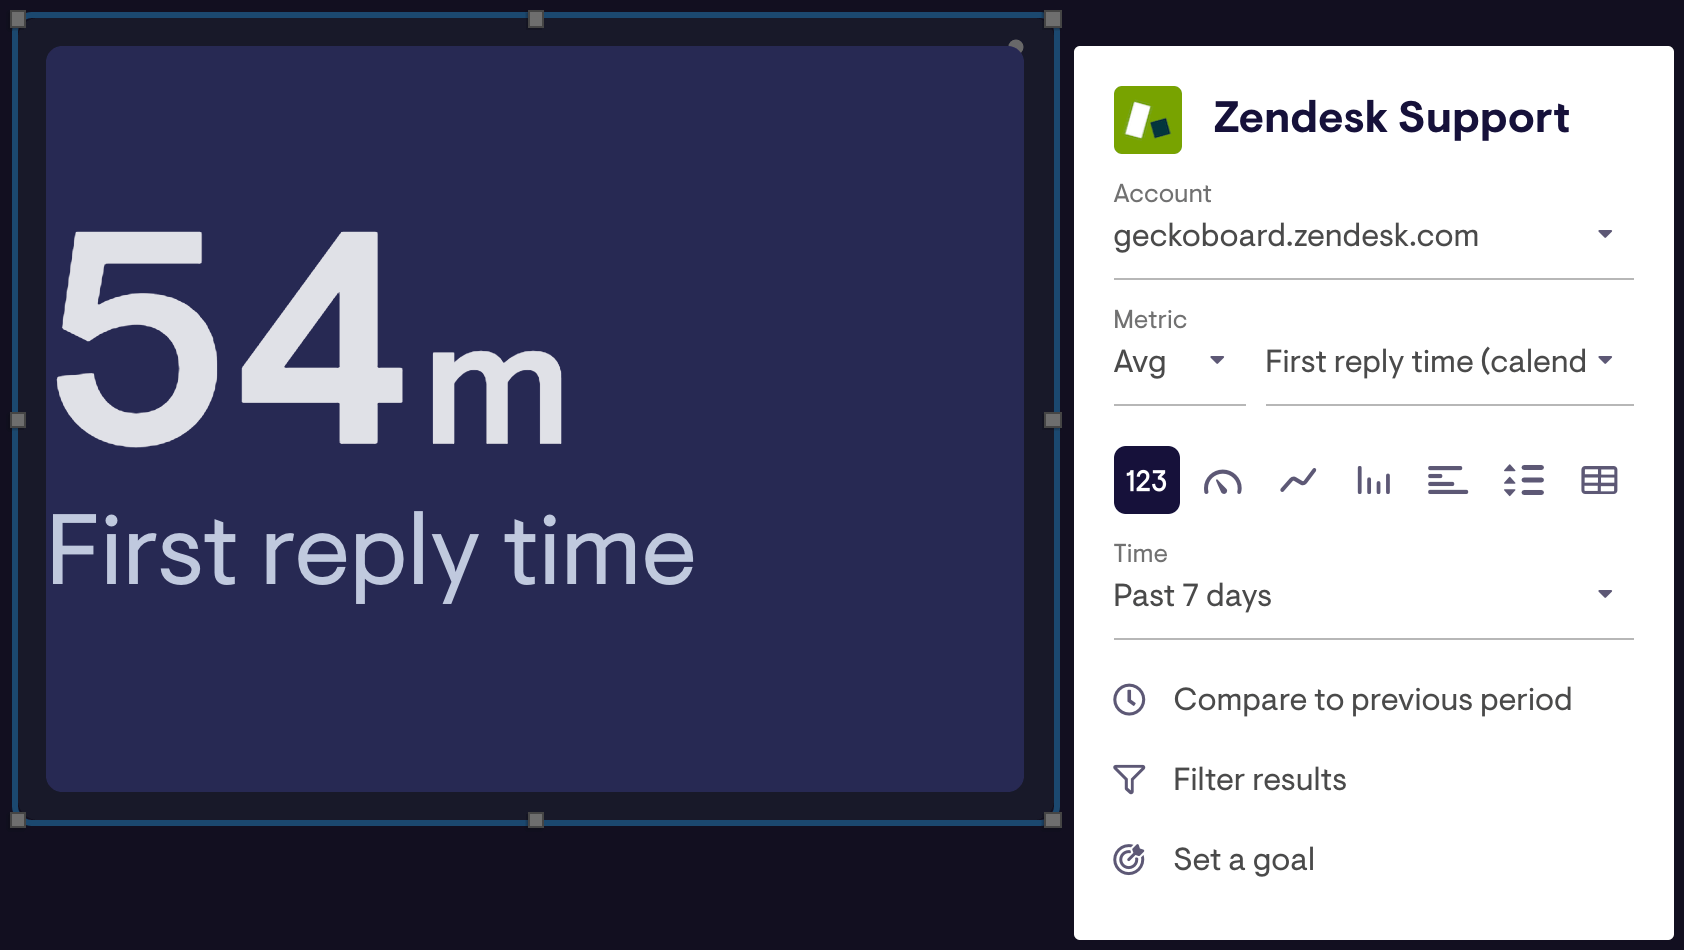 zendesk support edit widget menu